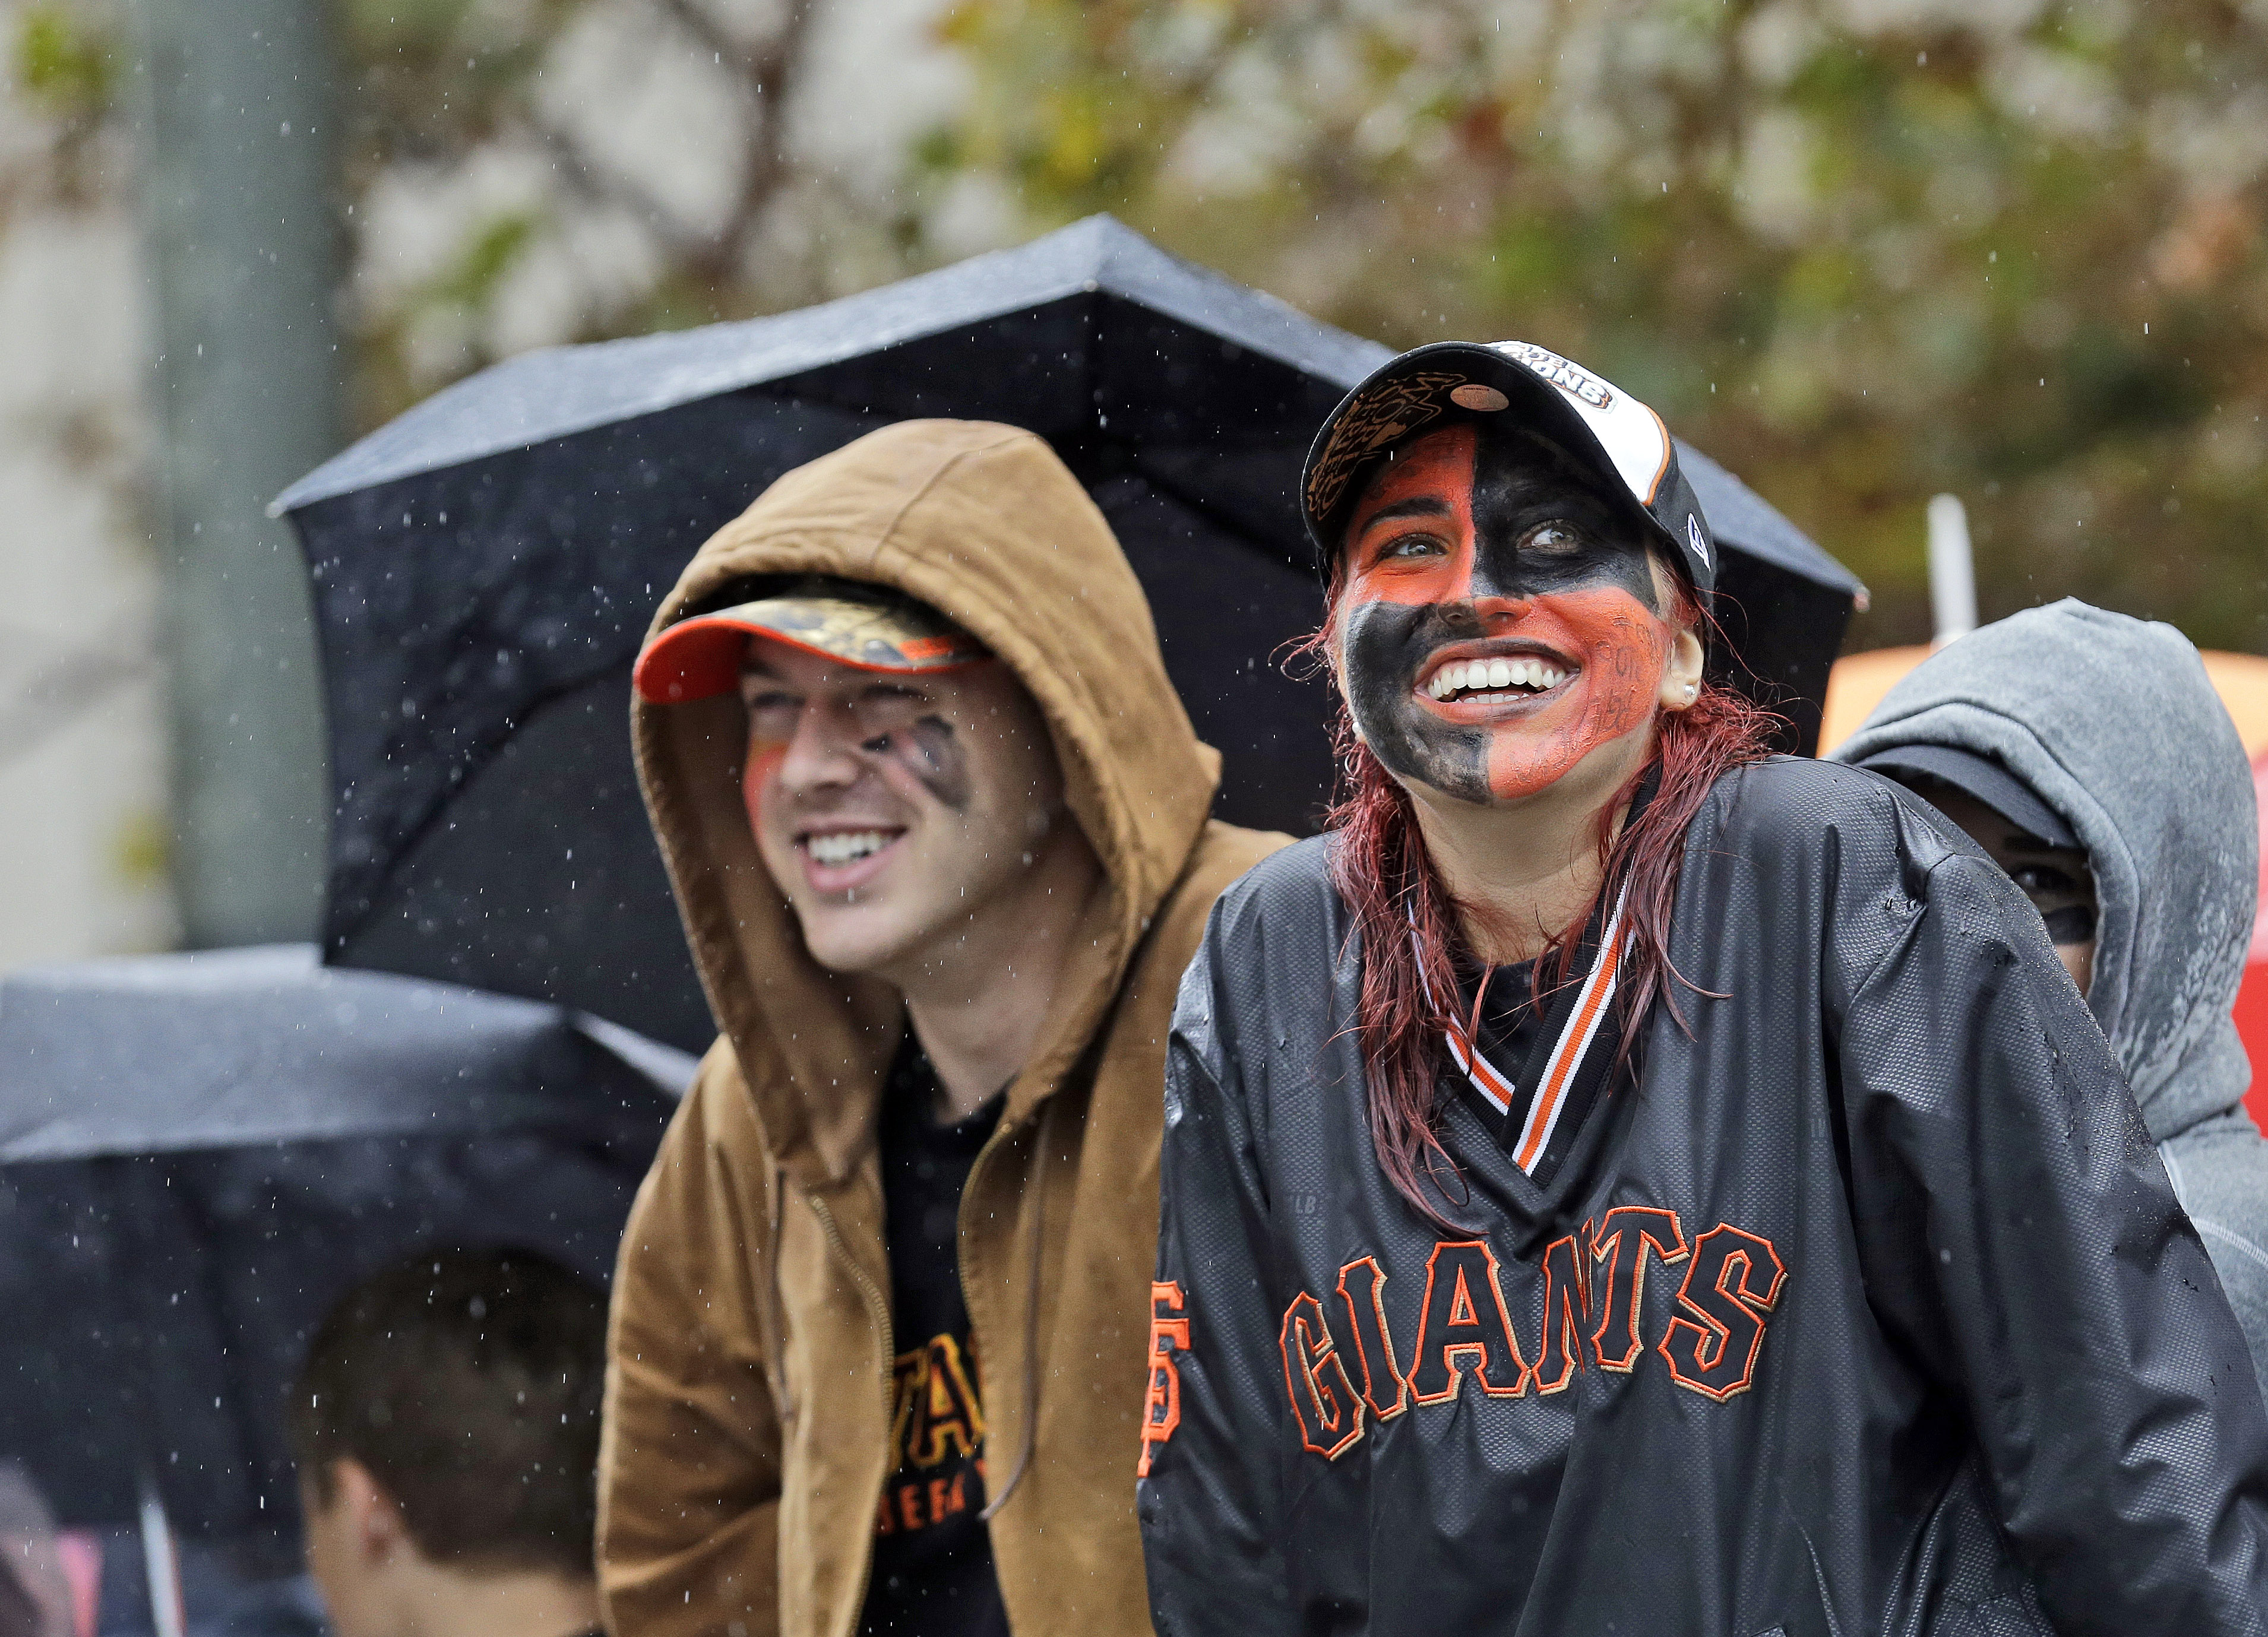 San Francisco Giants baseball fans Megan McPhillips, right, and Travis Saracco from Santa Rosa, Calif., wait in the rain for the start of the victory parade for the 2014 World Series Champion San Francisco Giants on Friday, Oct. 31, 2014 in San Francisco.